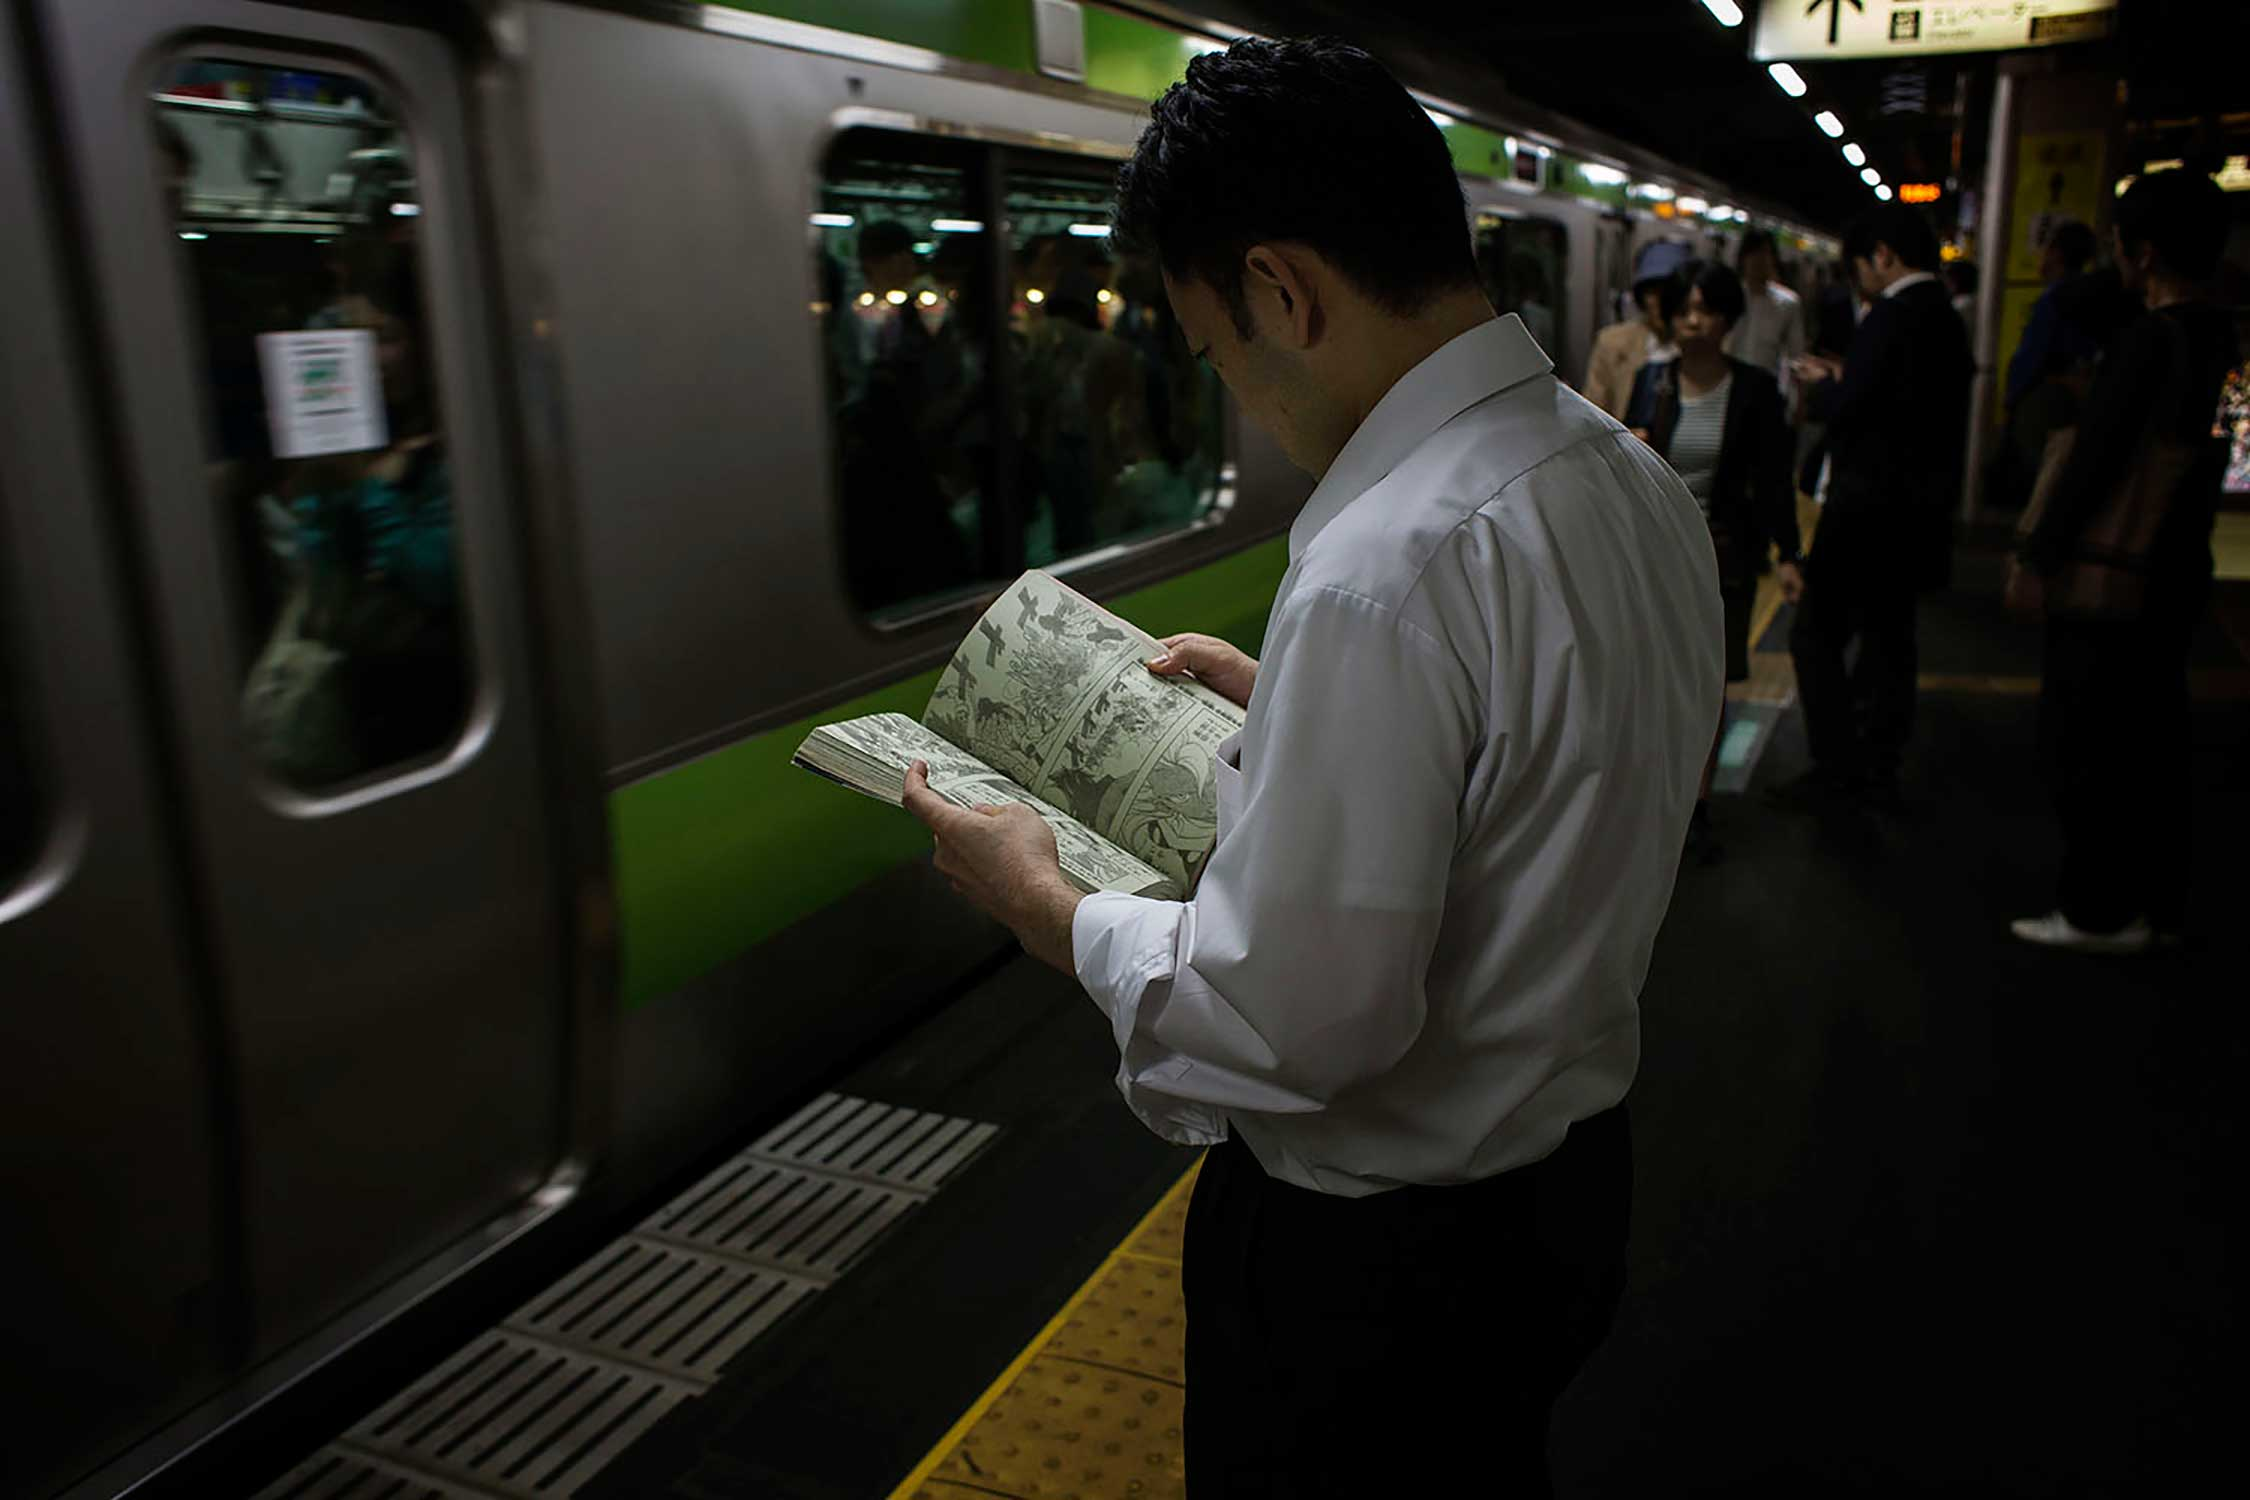 A man reads a Manga magazine while he waits for the subway train after a day of work in Tokyo.